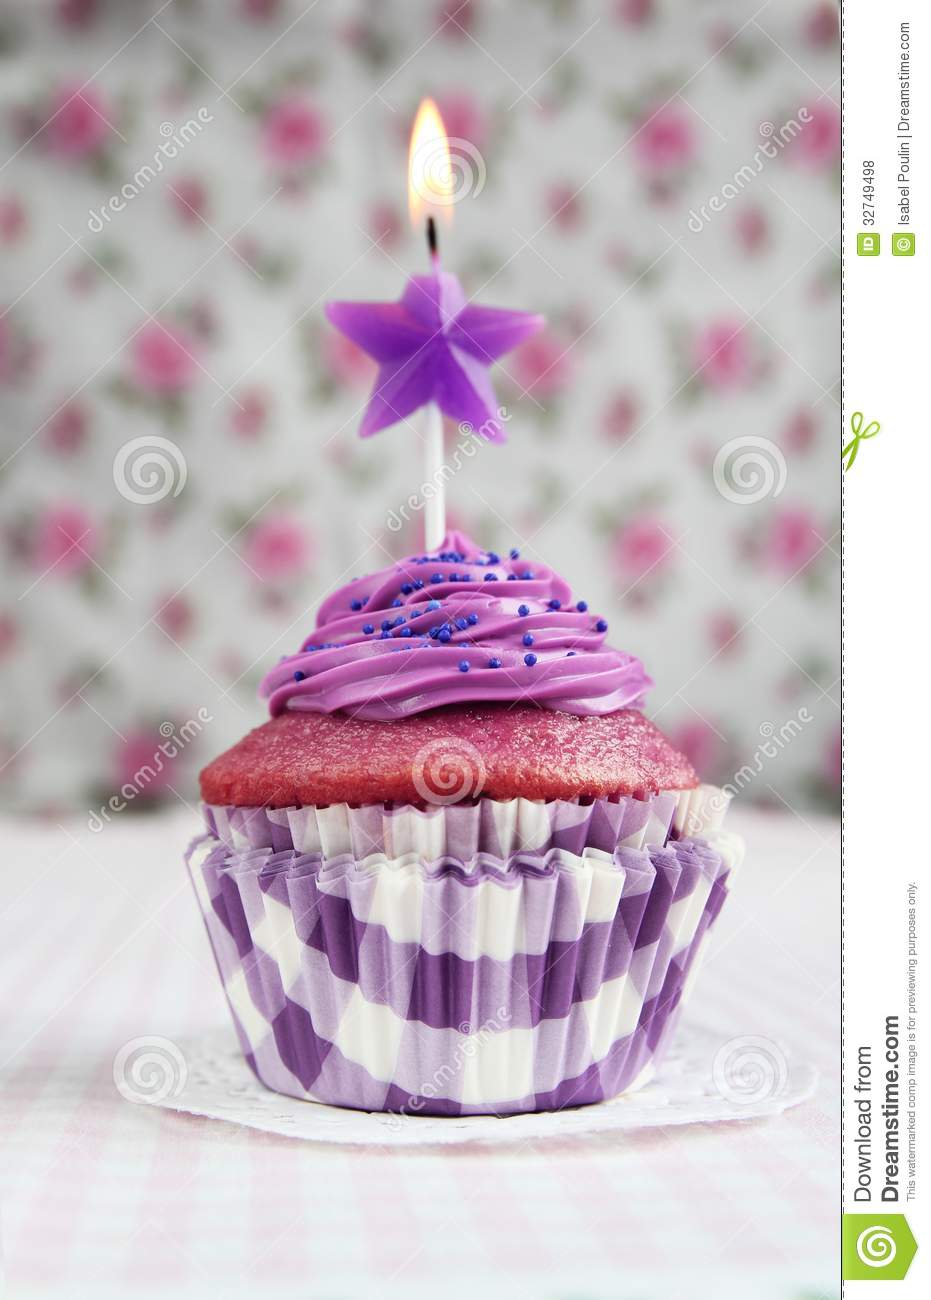 Purple Cupcake Royalty Free Stock Photos Image 32749498